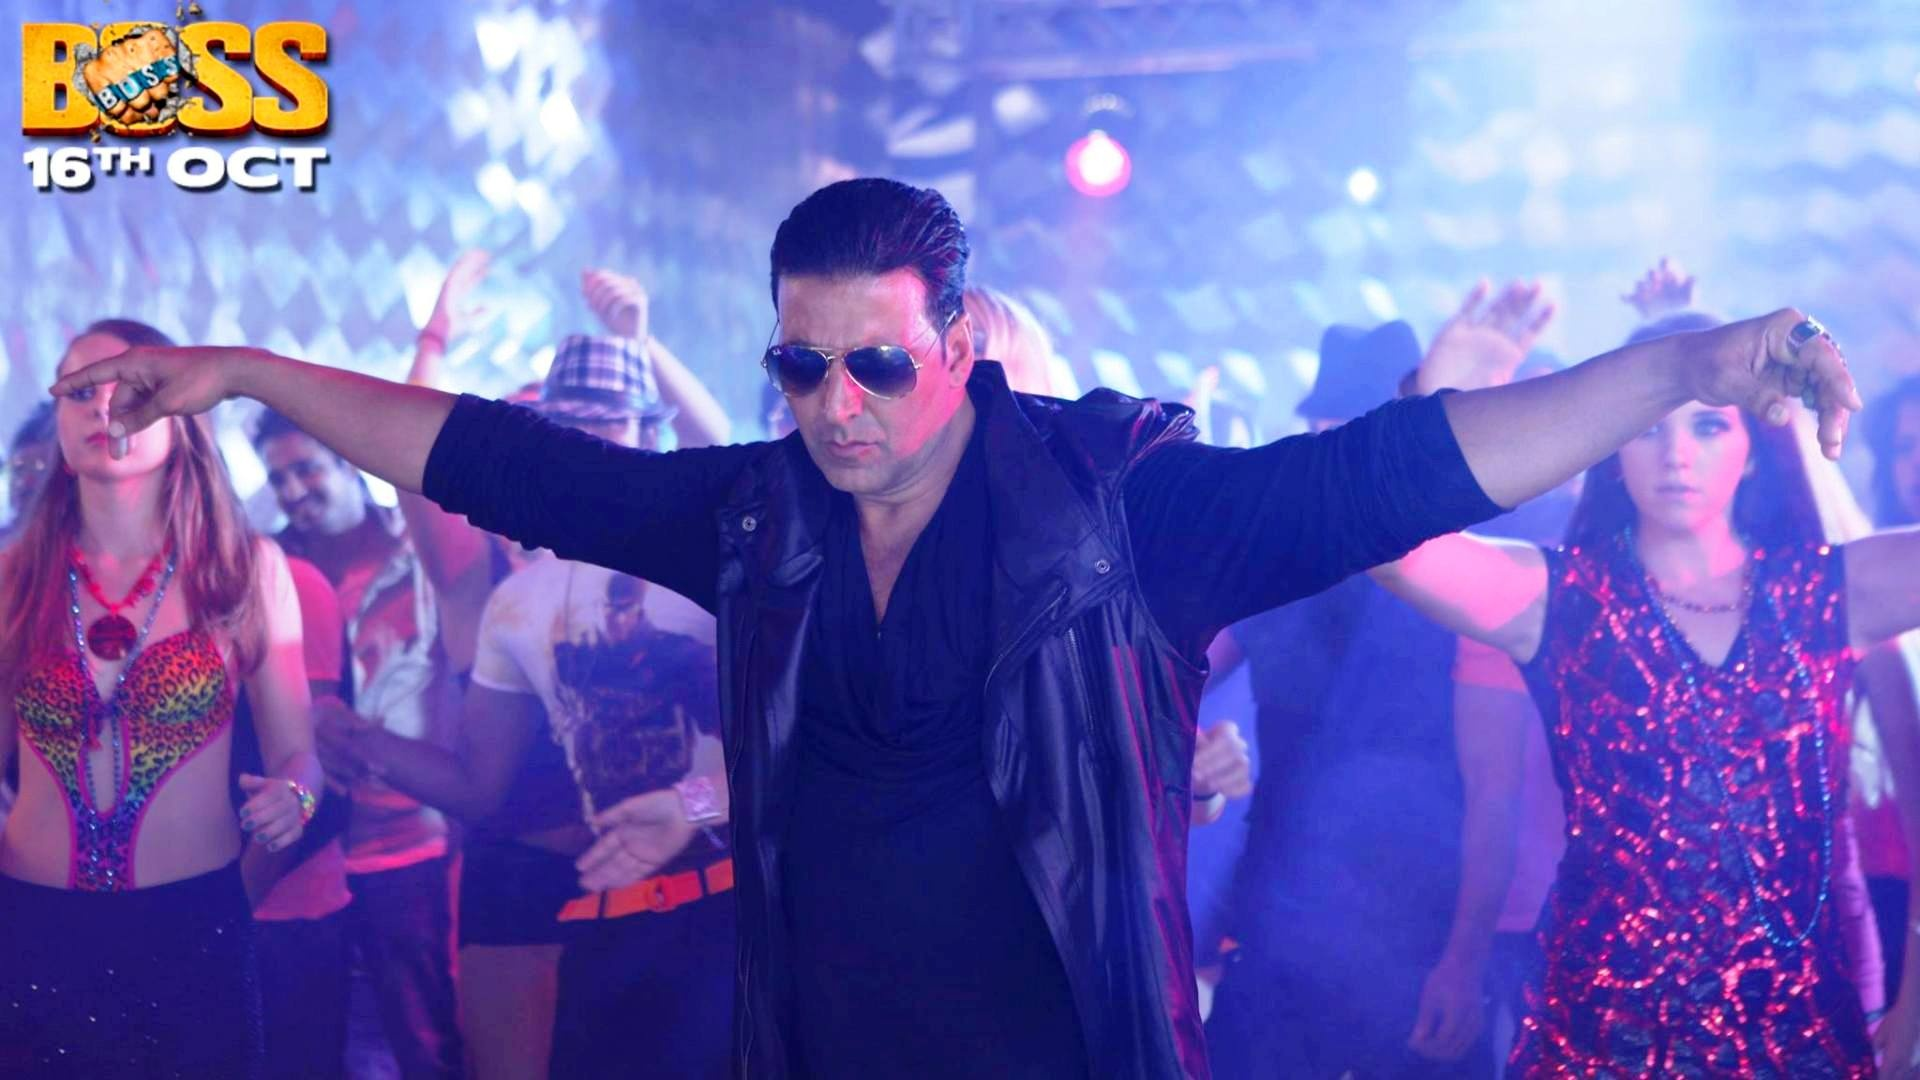 party all night song akshay kumar wallpapers - 1920x1080 - 301632